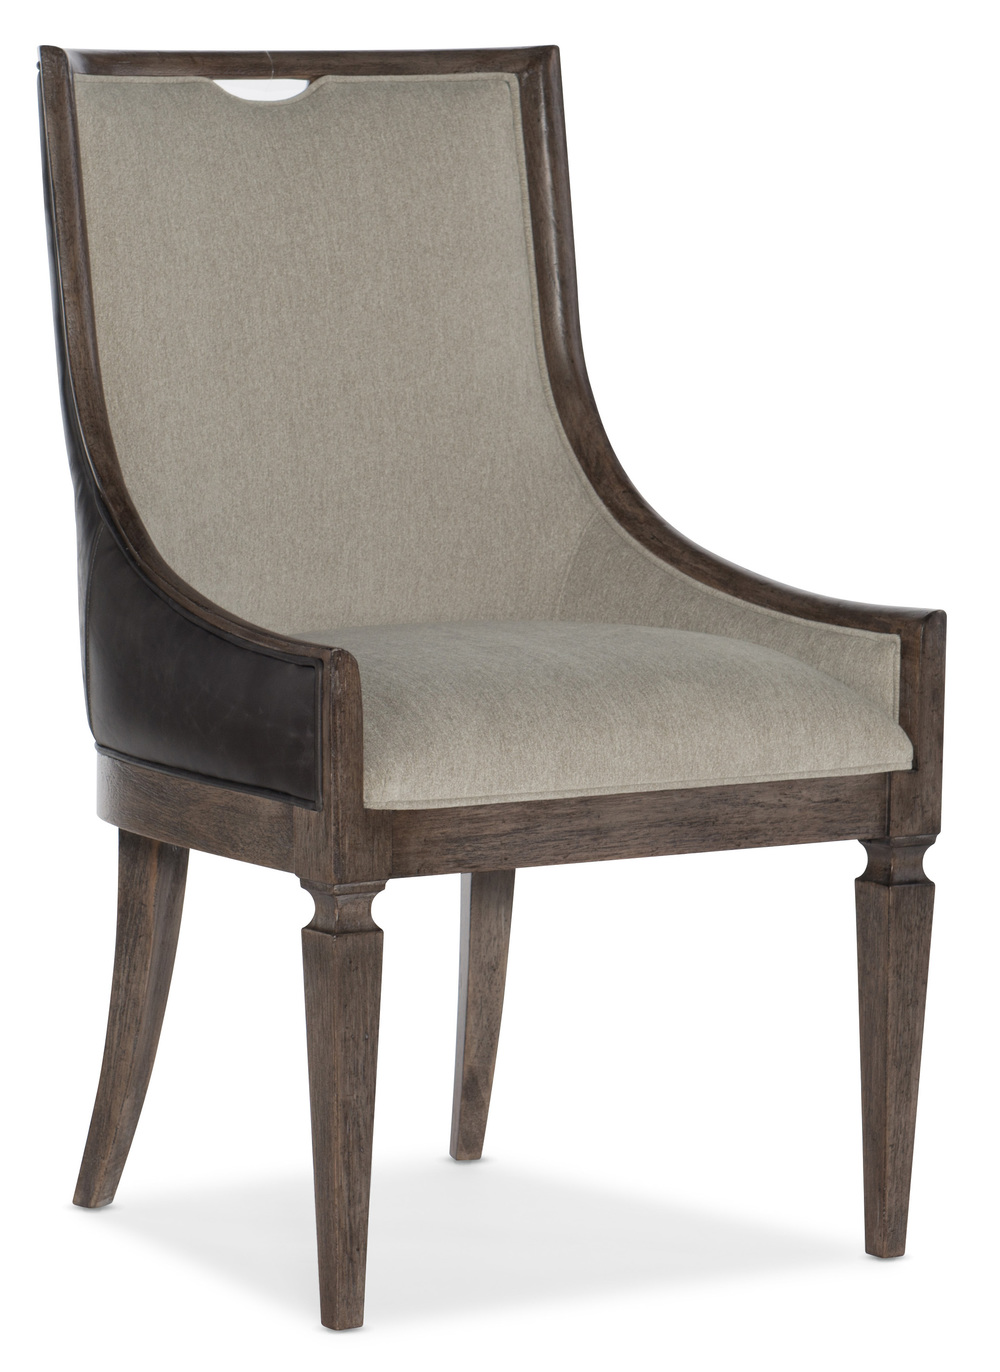 Hooker Furniture - Host Chair